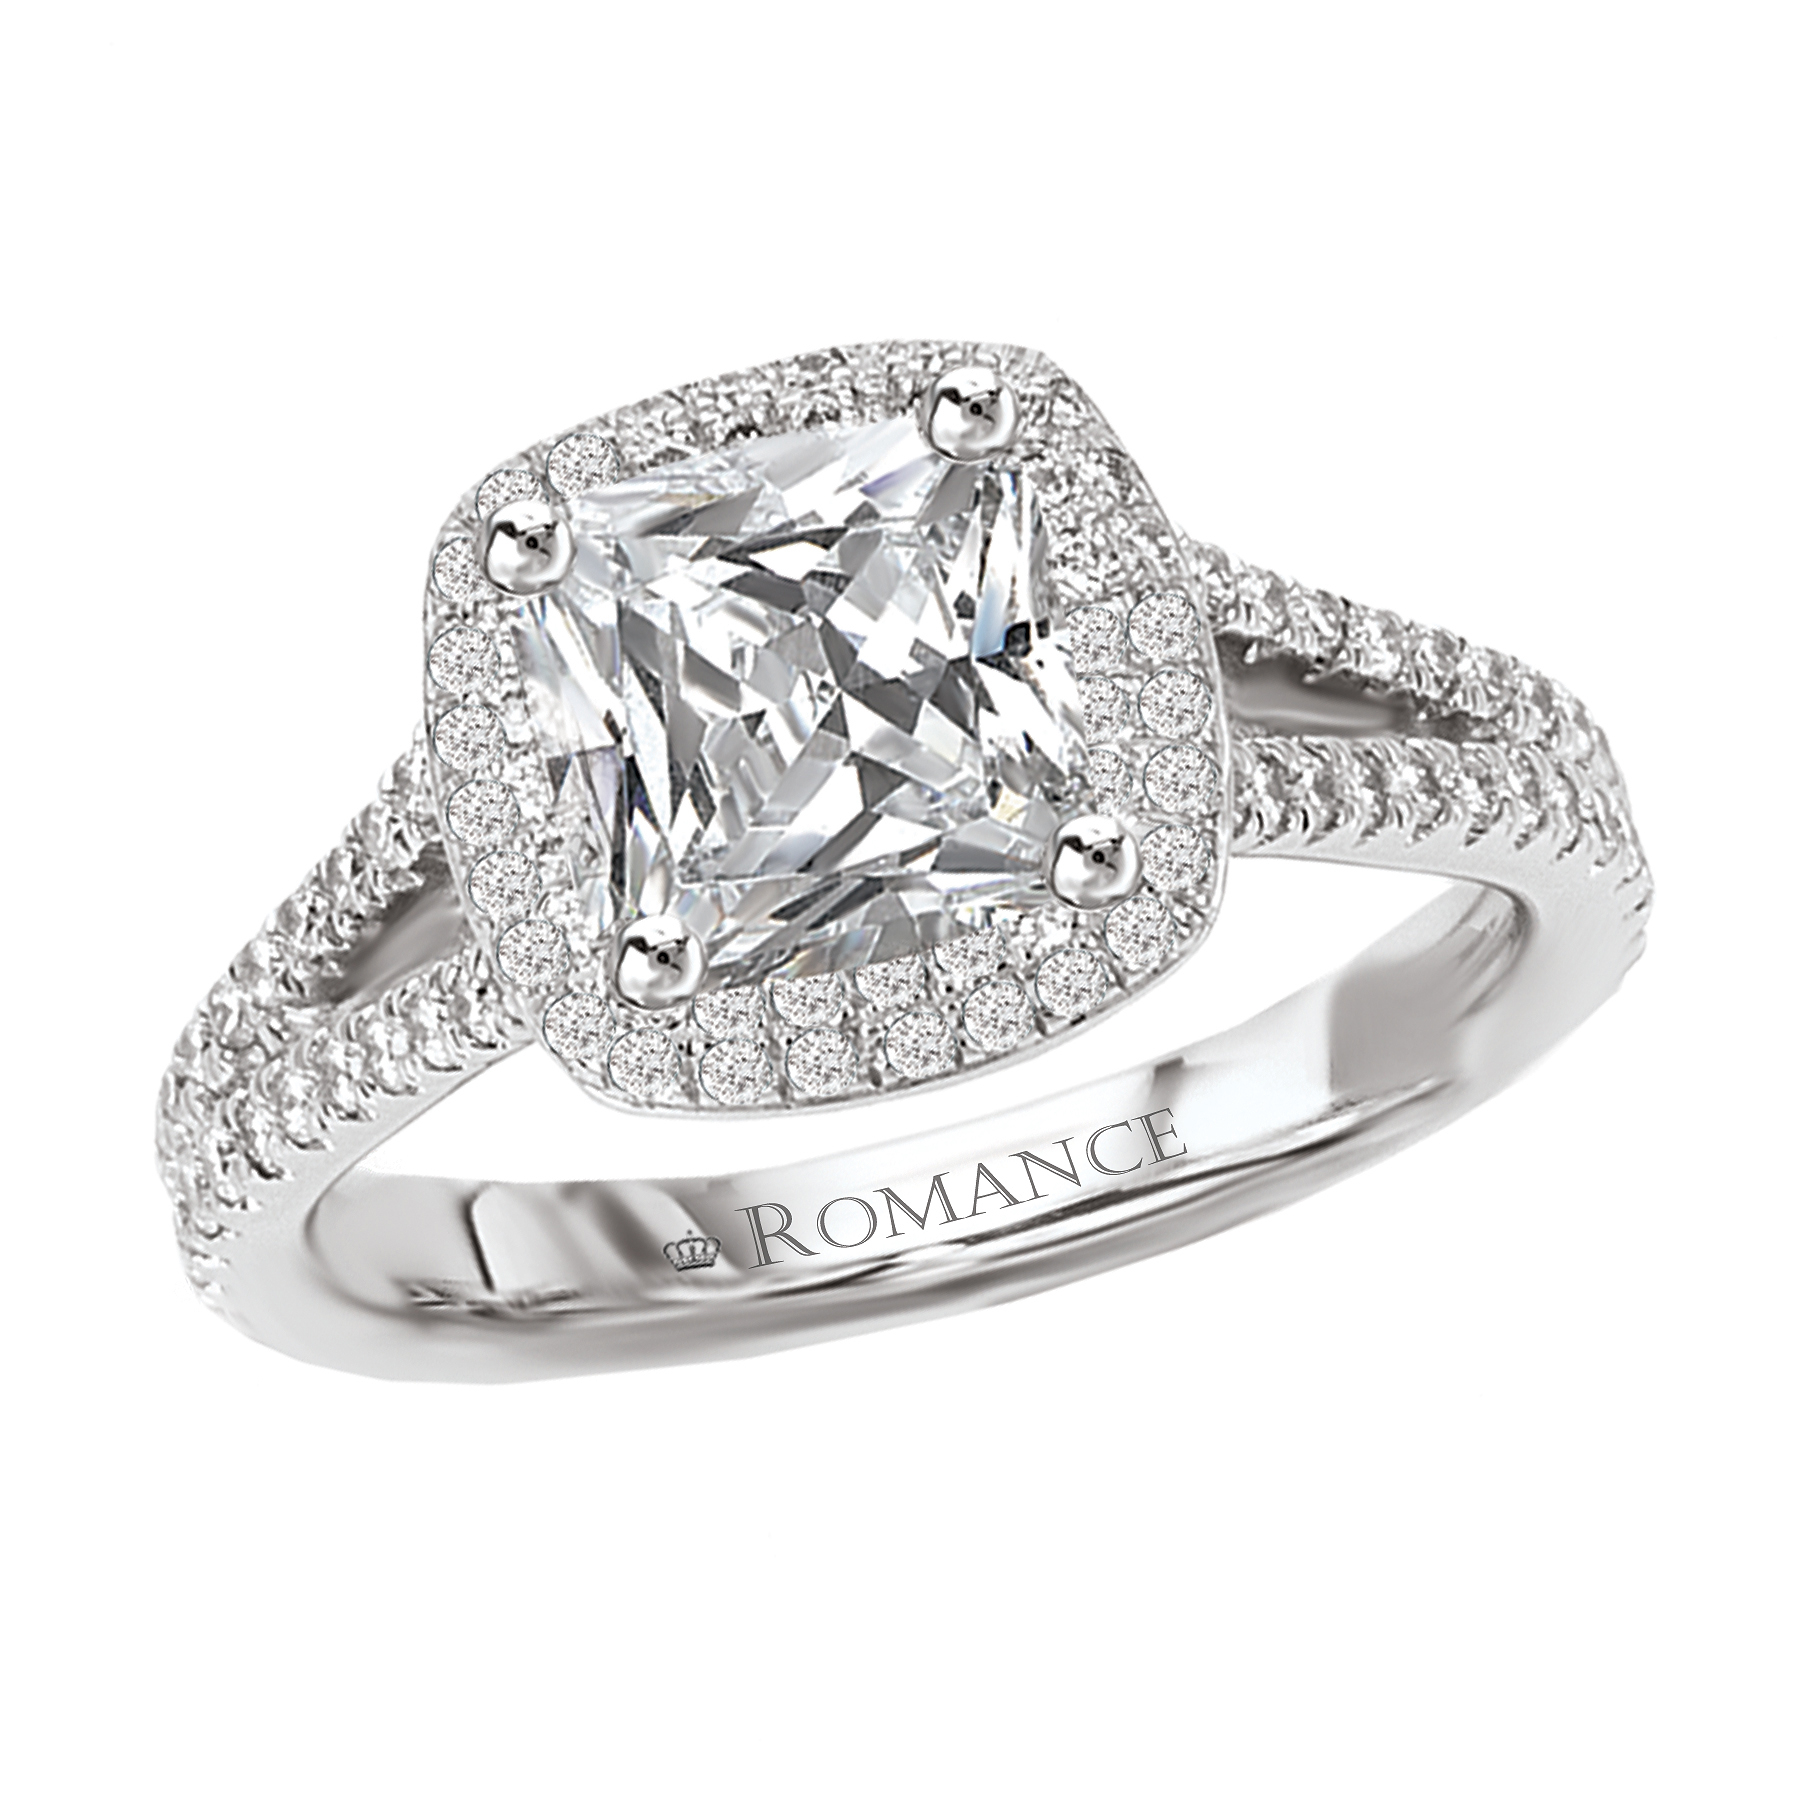 Romance Engagement Rings 117101-100 product image